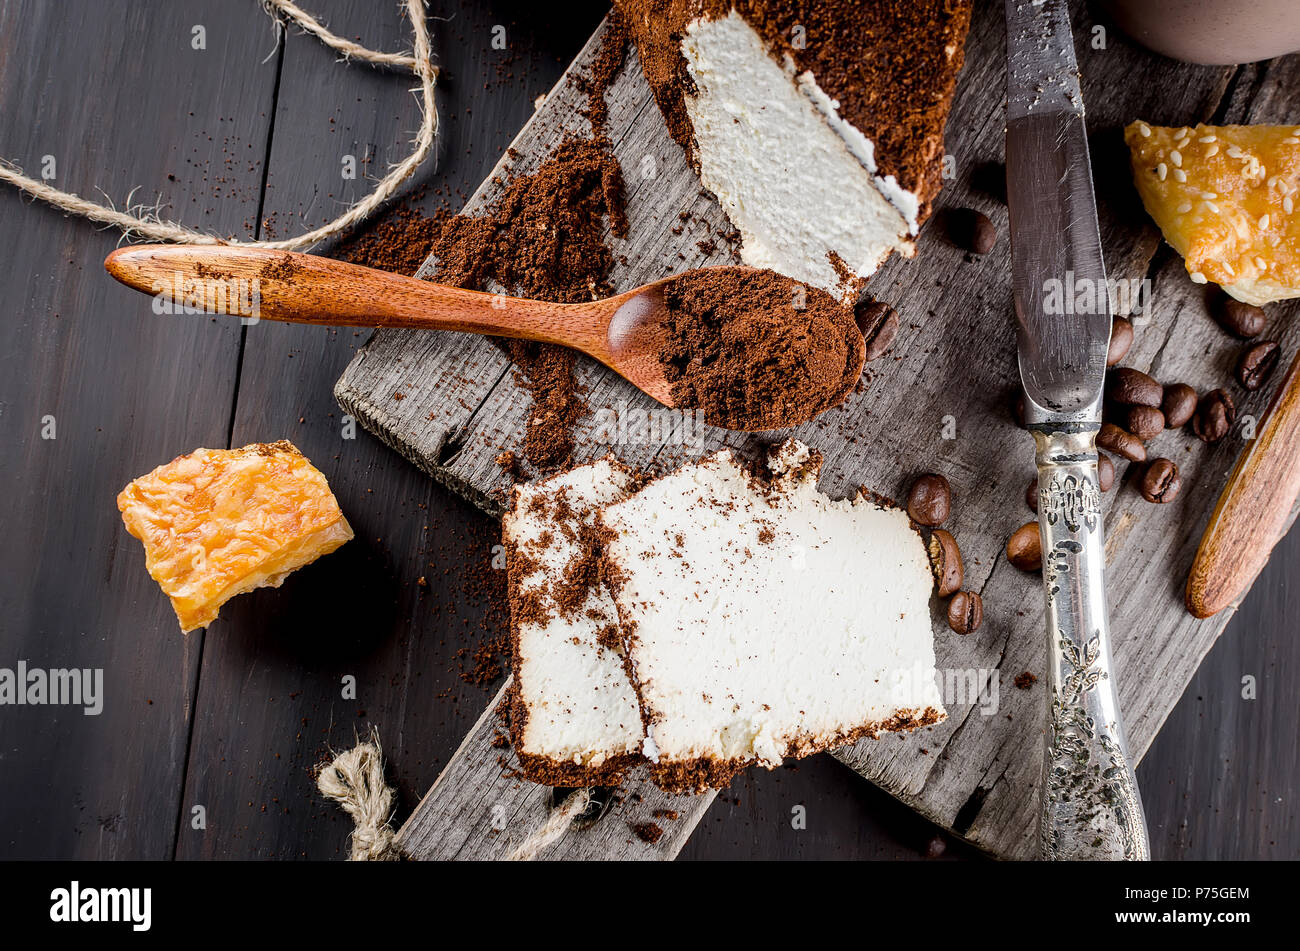 soft homemade cheese wrapped in ground coffee and a cup of coffee with milk breakfast on a wooden table - Stock Image